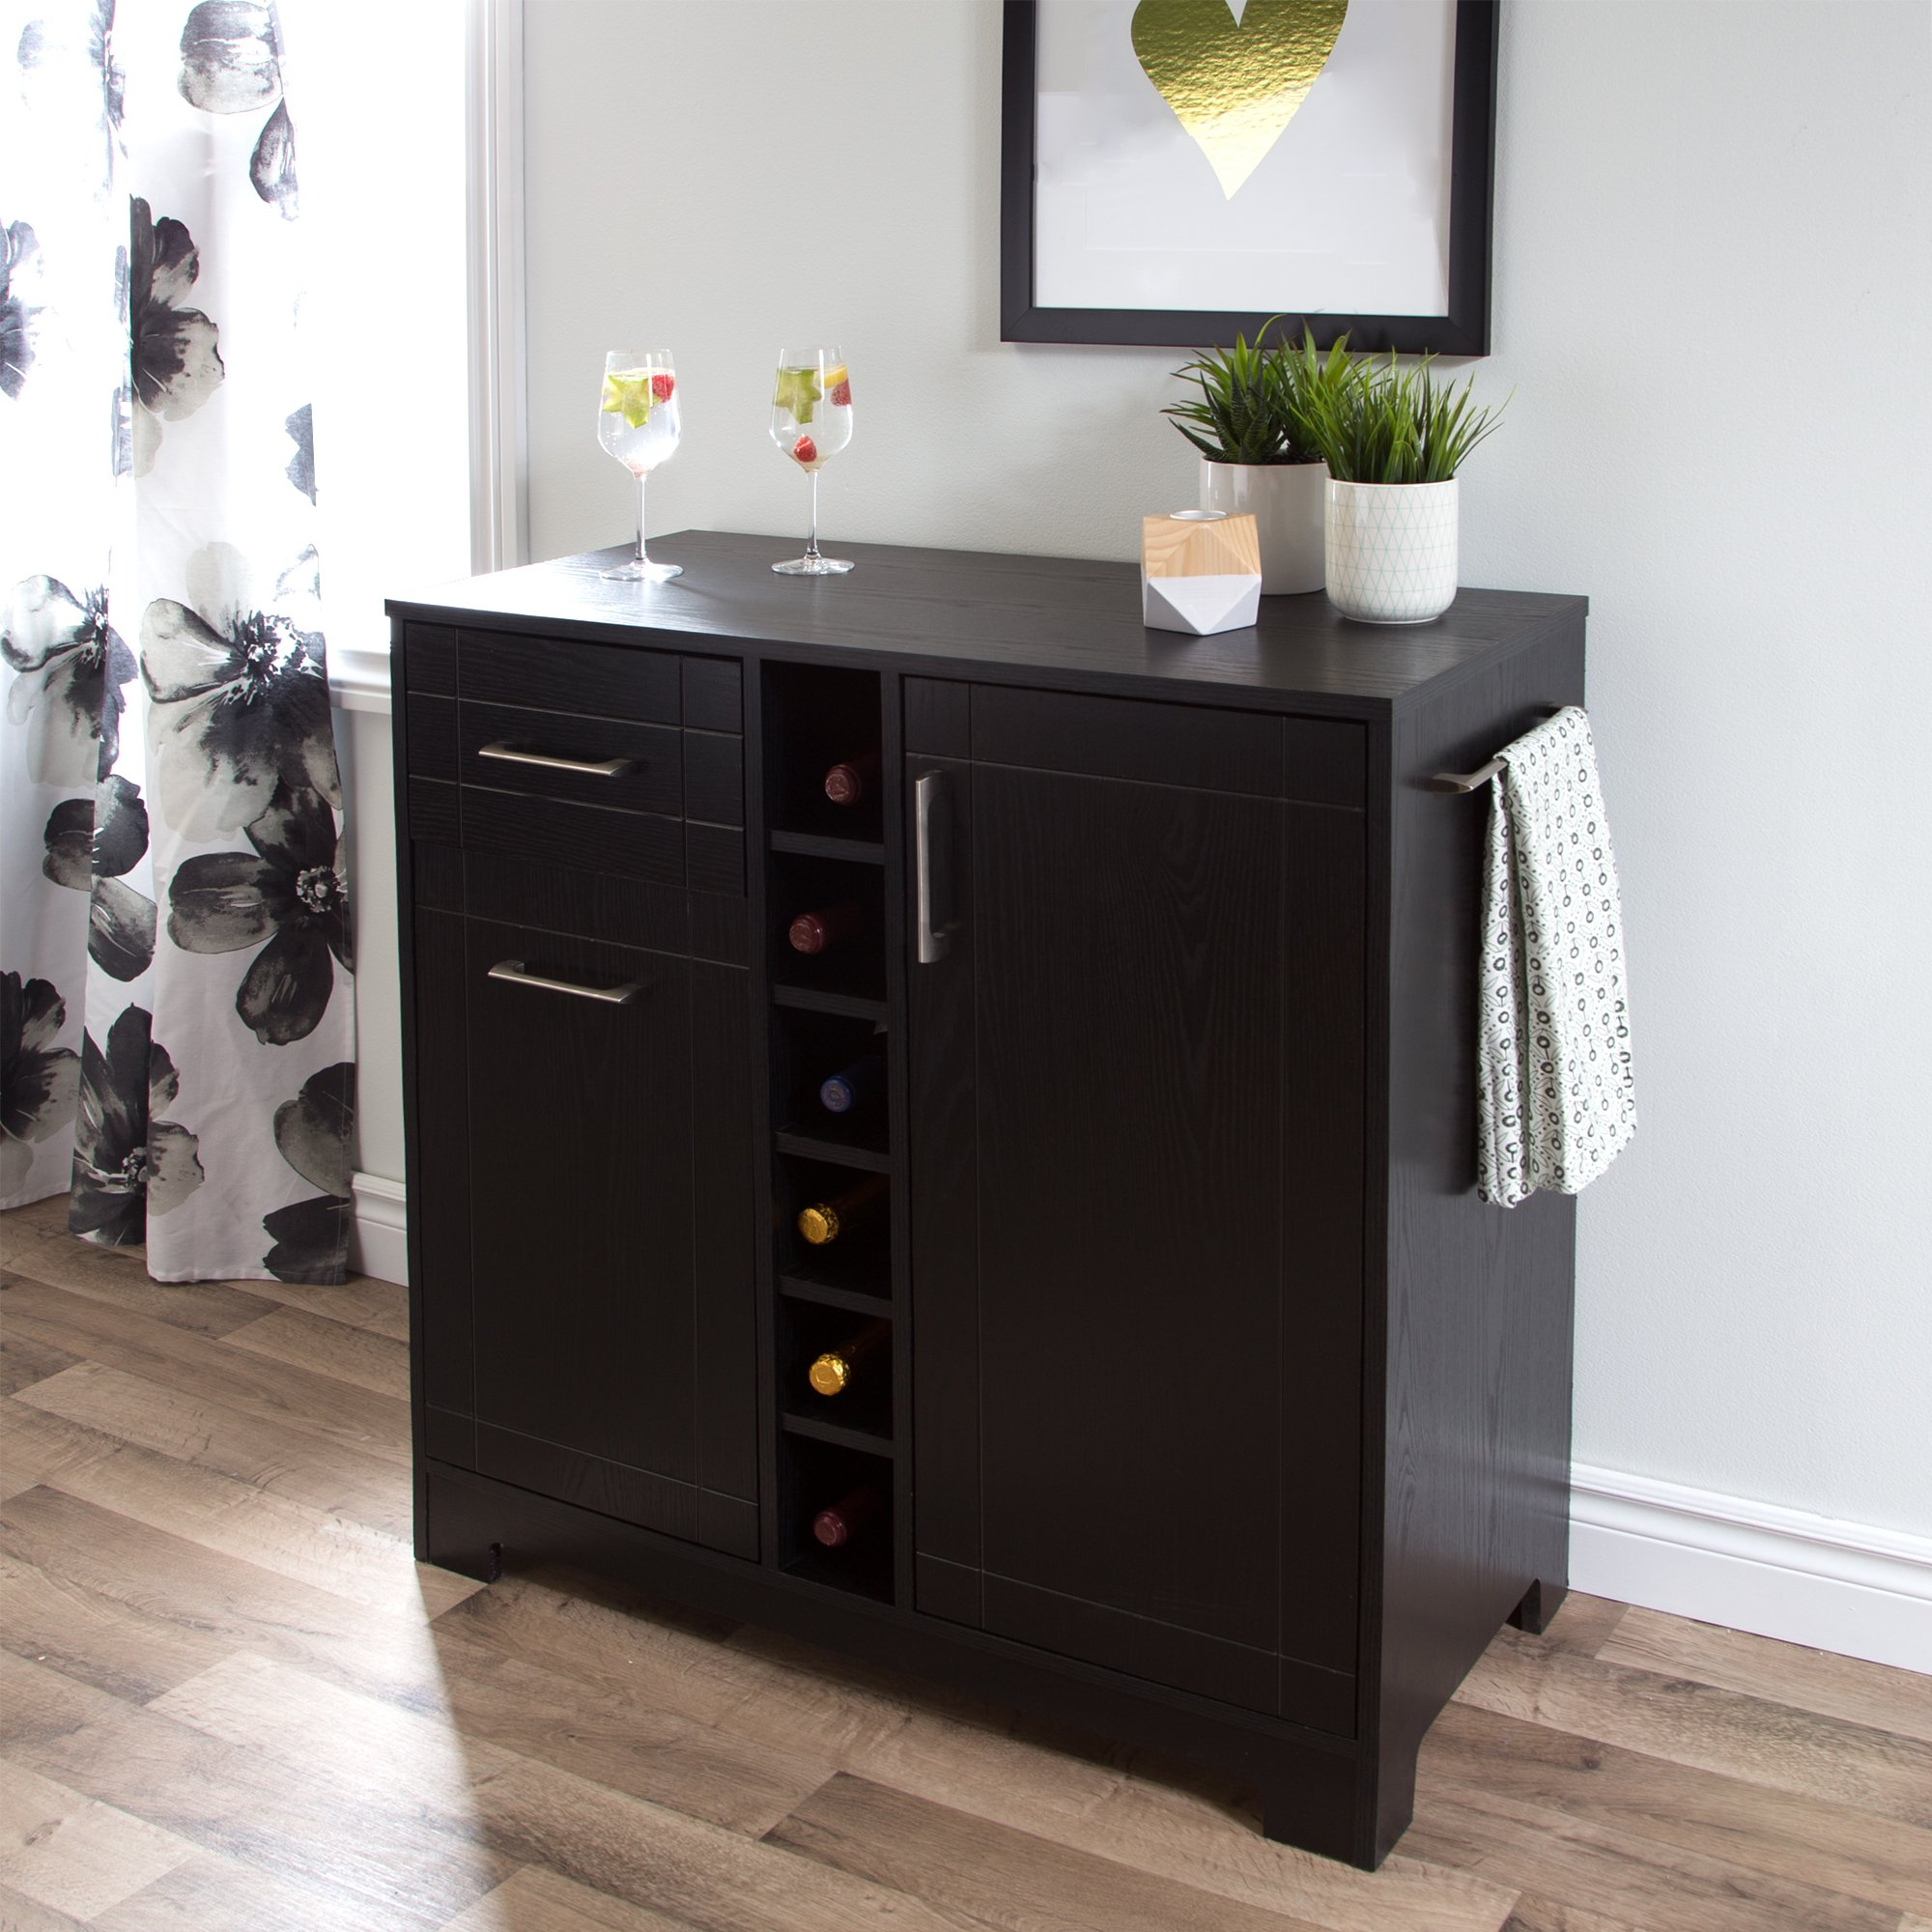 South Shore Vietti Bar Cabinet with Bottle and Glass Storage, Black Oak by South Shore